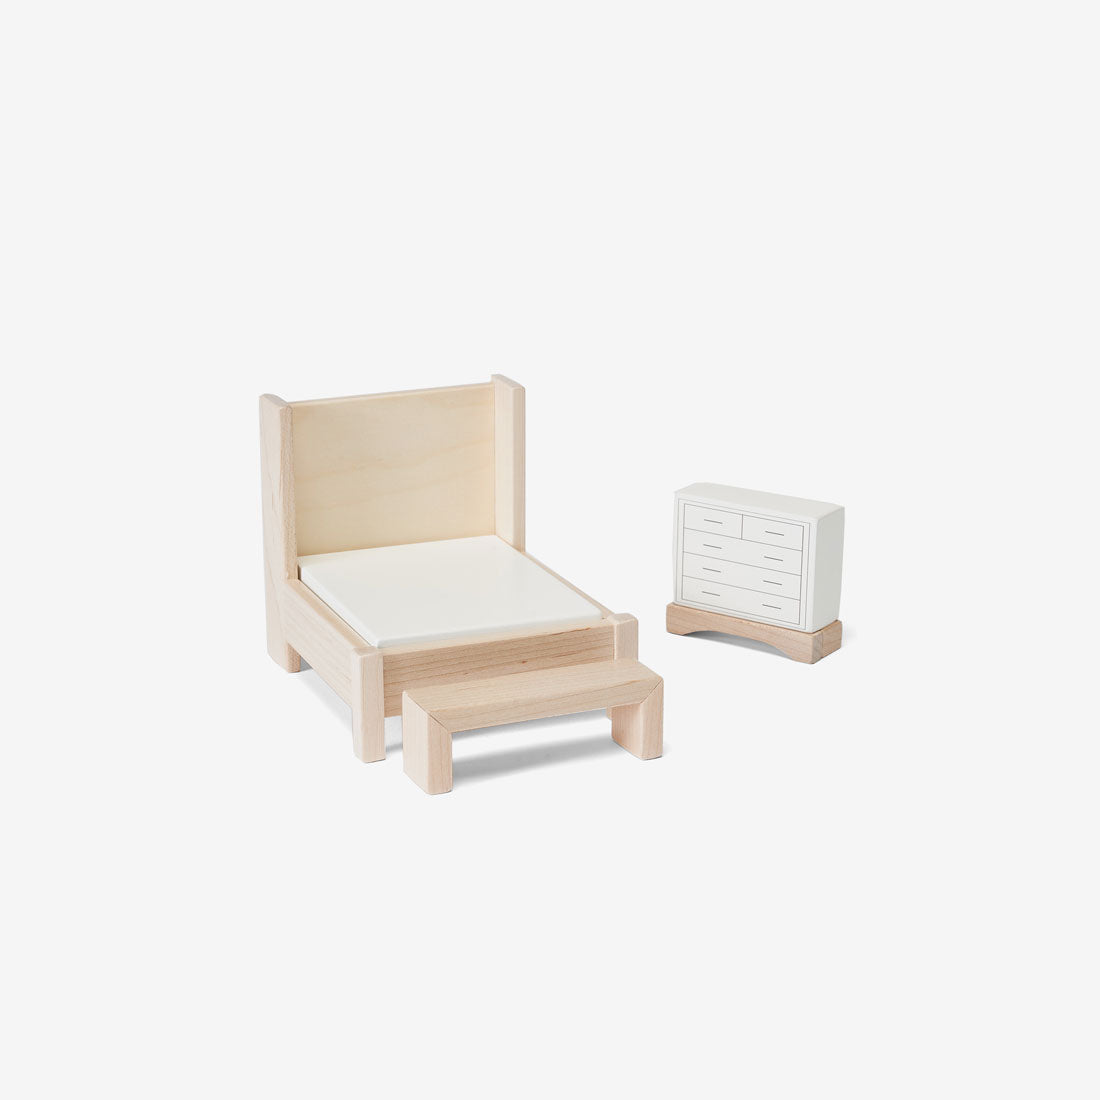 Dollhouse Furniture Set - Bedroom